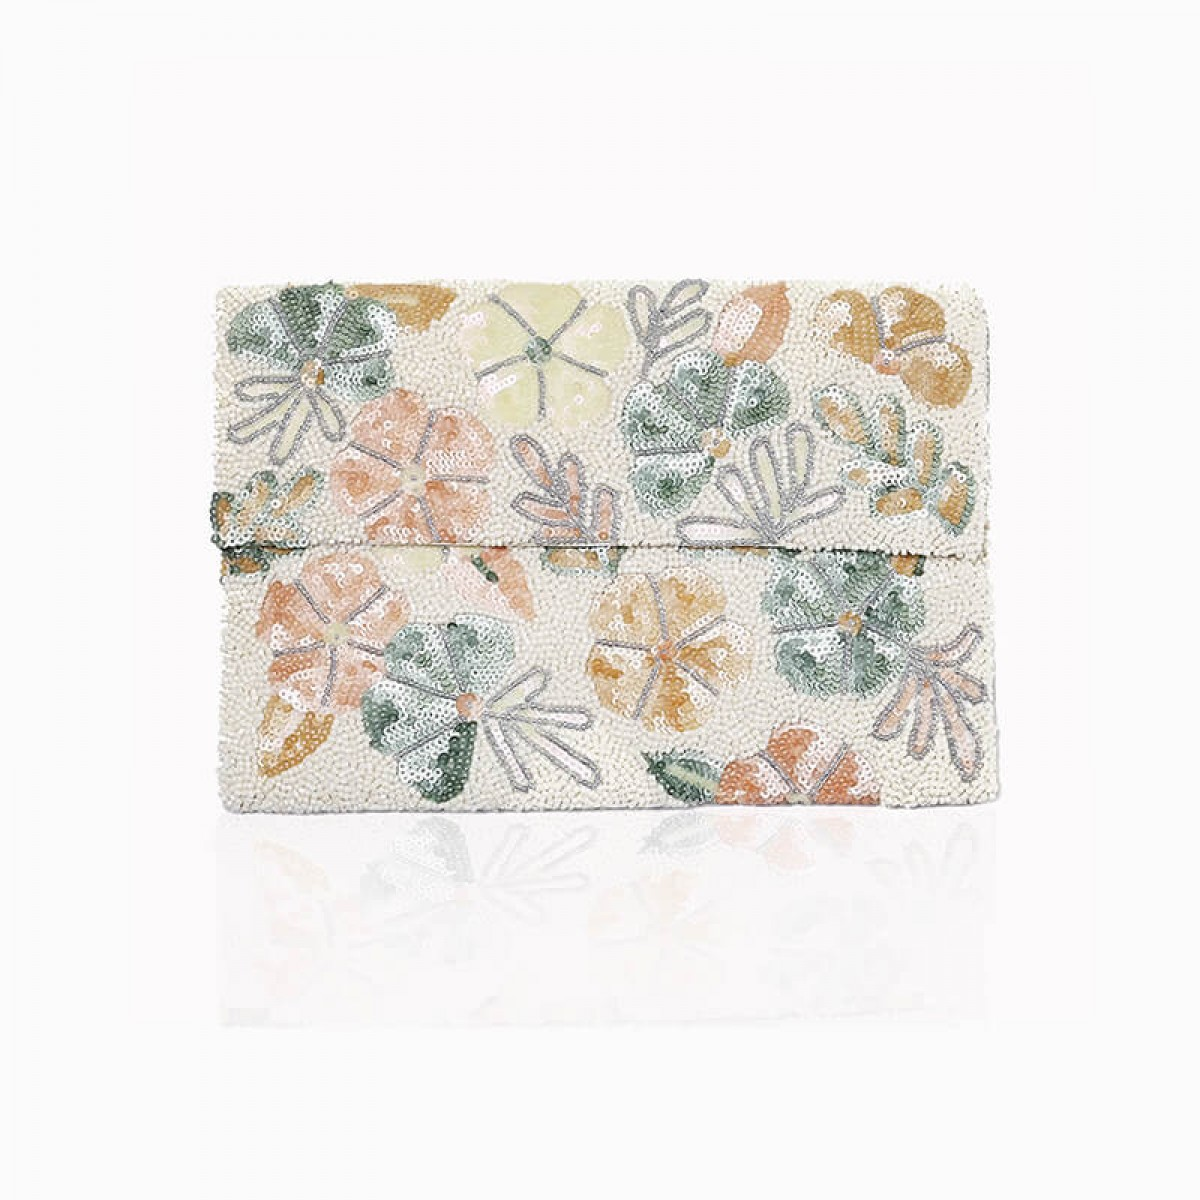 Beaded and Sequin Flower Clutch Bag - White